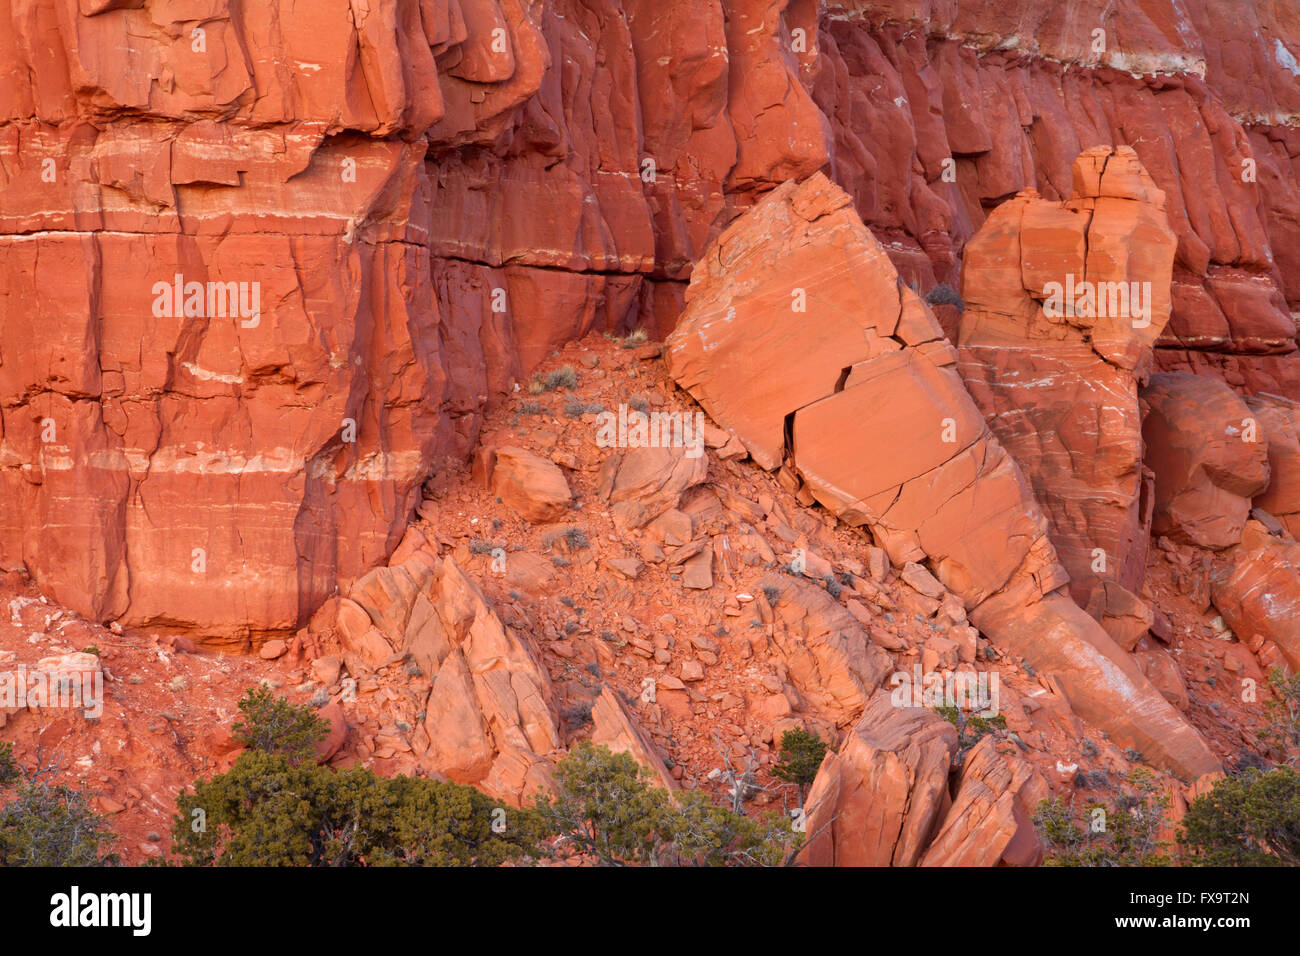 An example of the fragile 'Old Red Sandstone' rock that is found all over the Colorado Plateau. Thoreau, - Stock Image